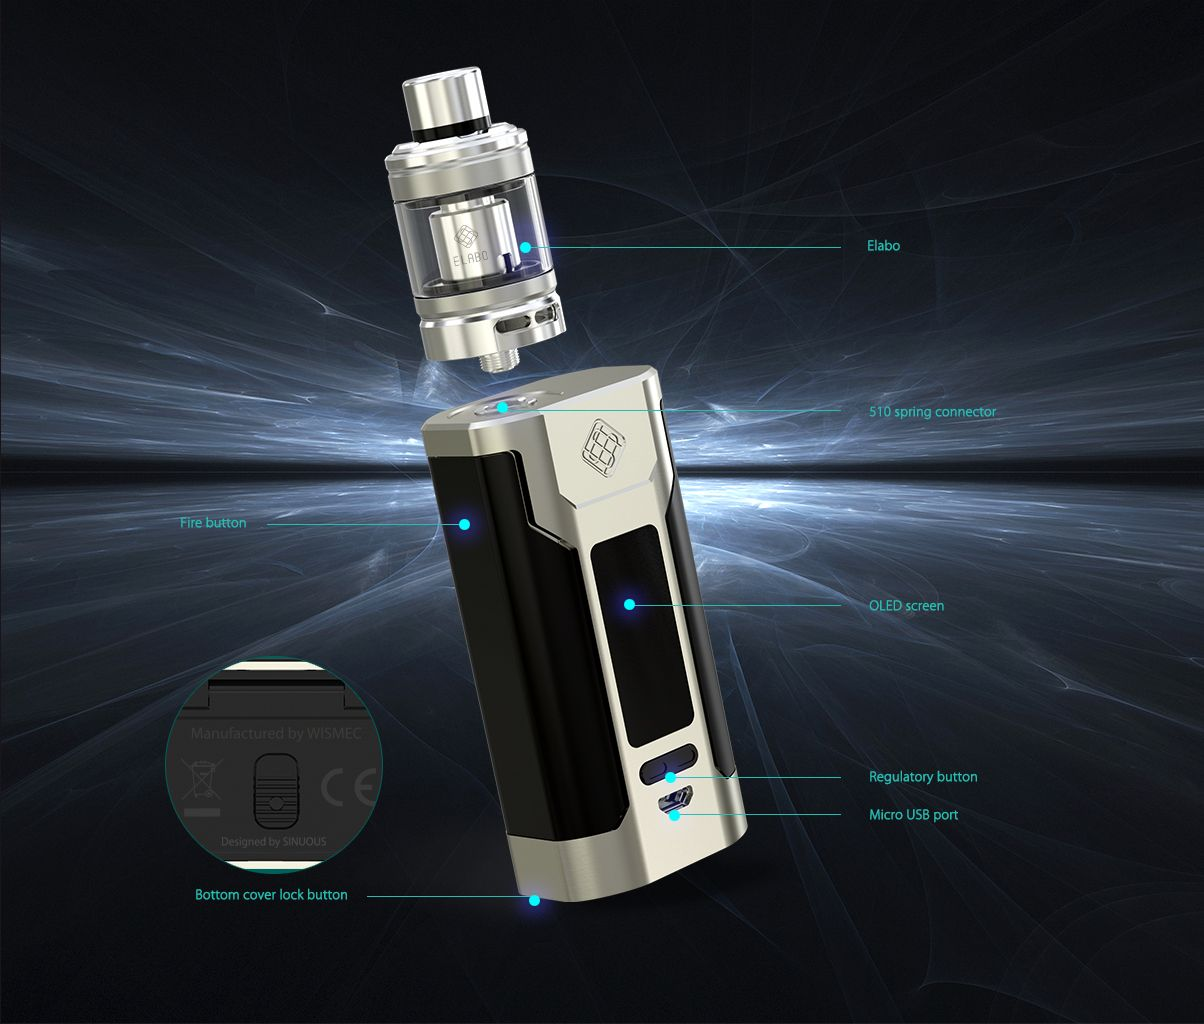 WISMEC Predator 228 TC Kit With Elabo Tank_vaporl.com